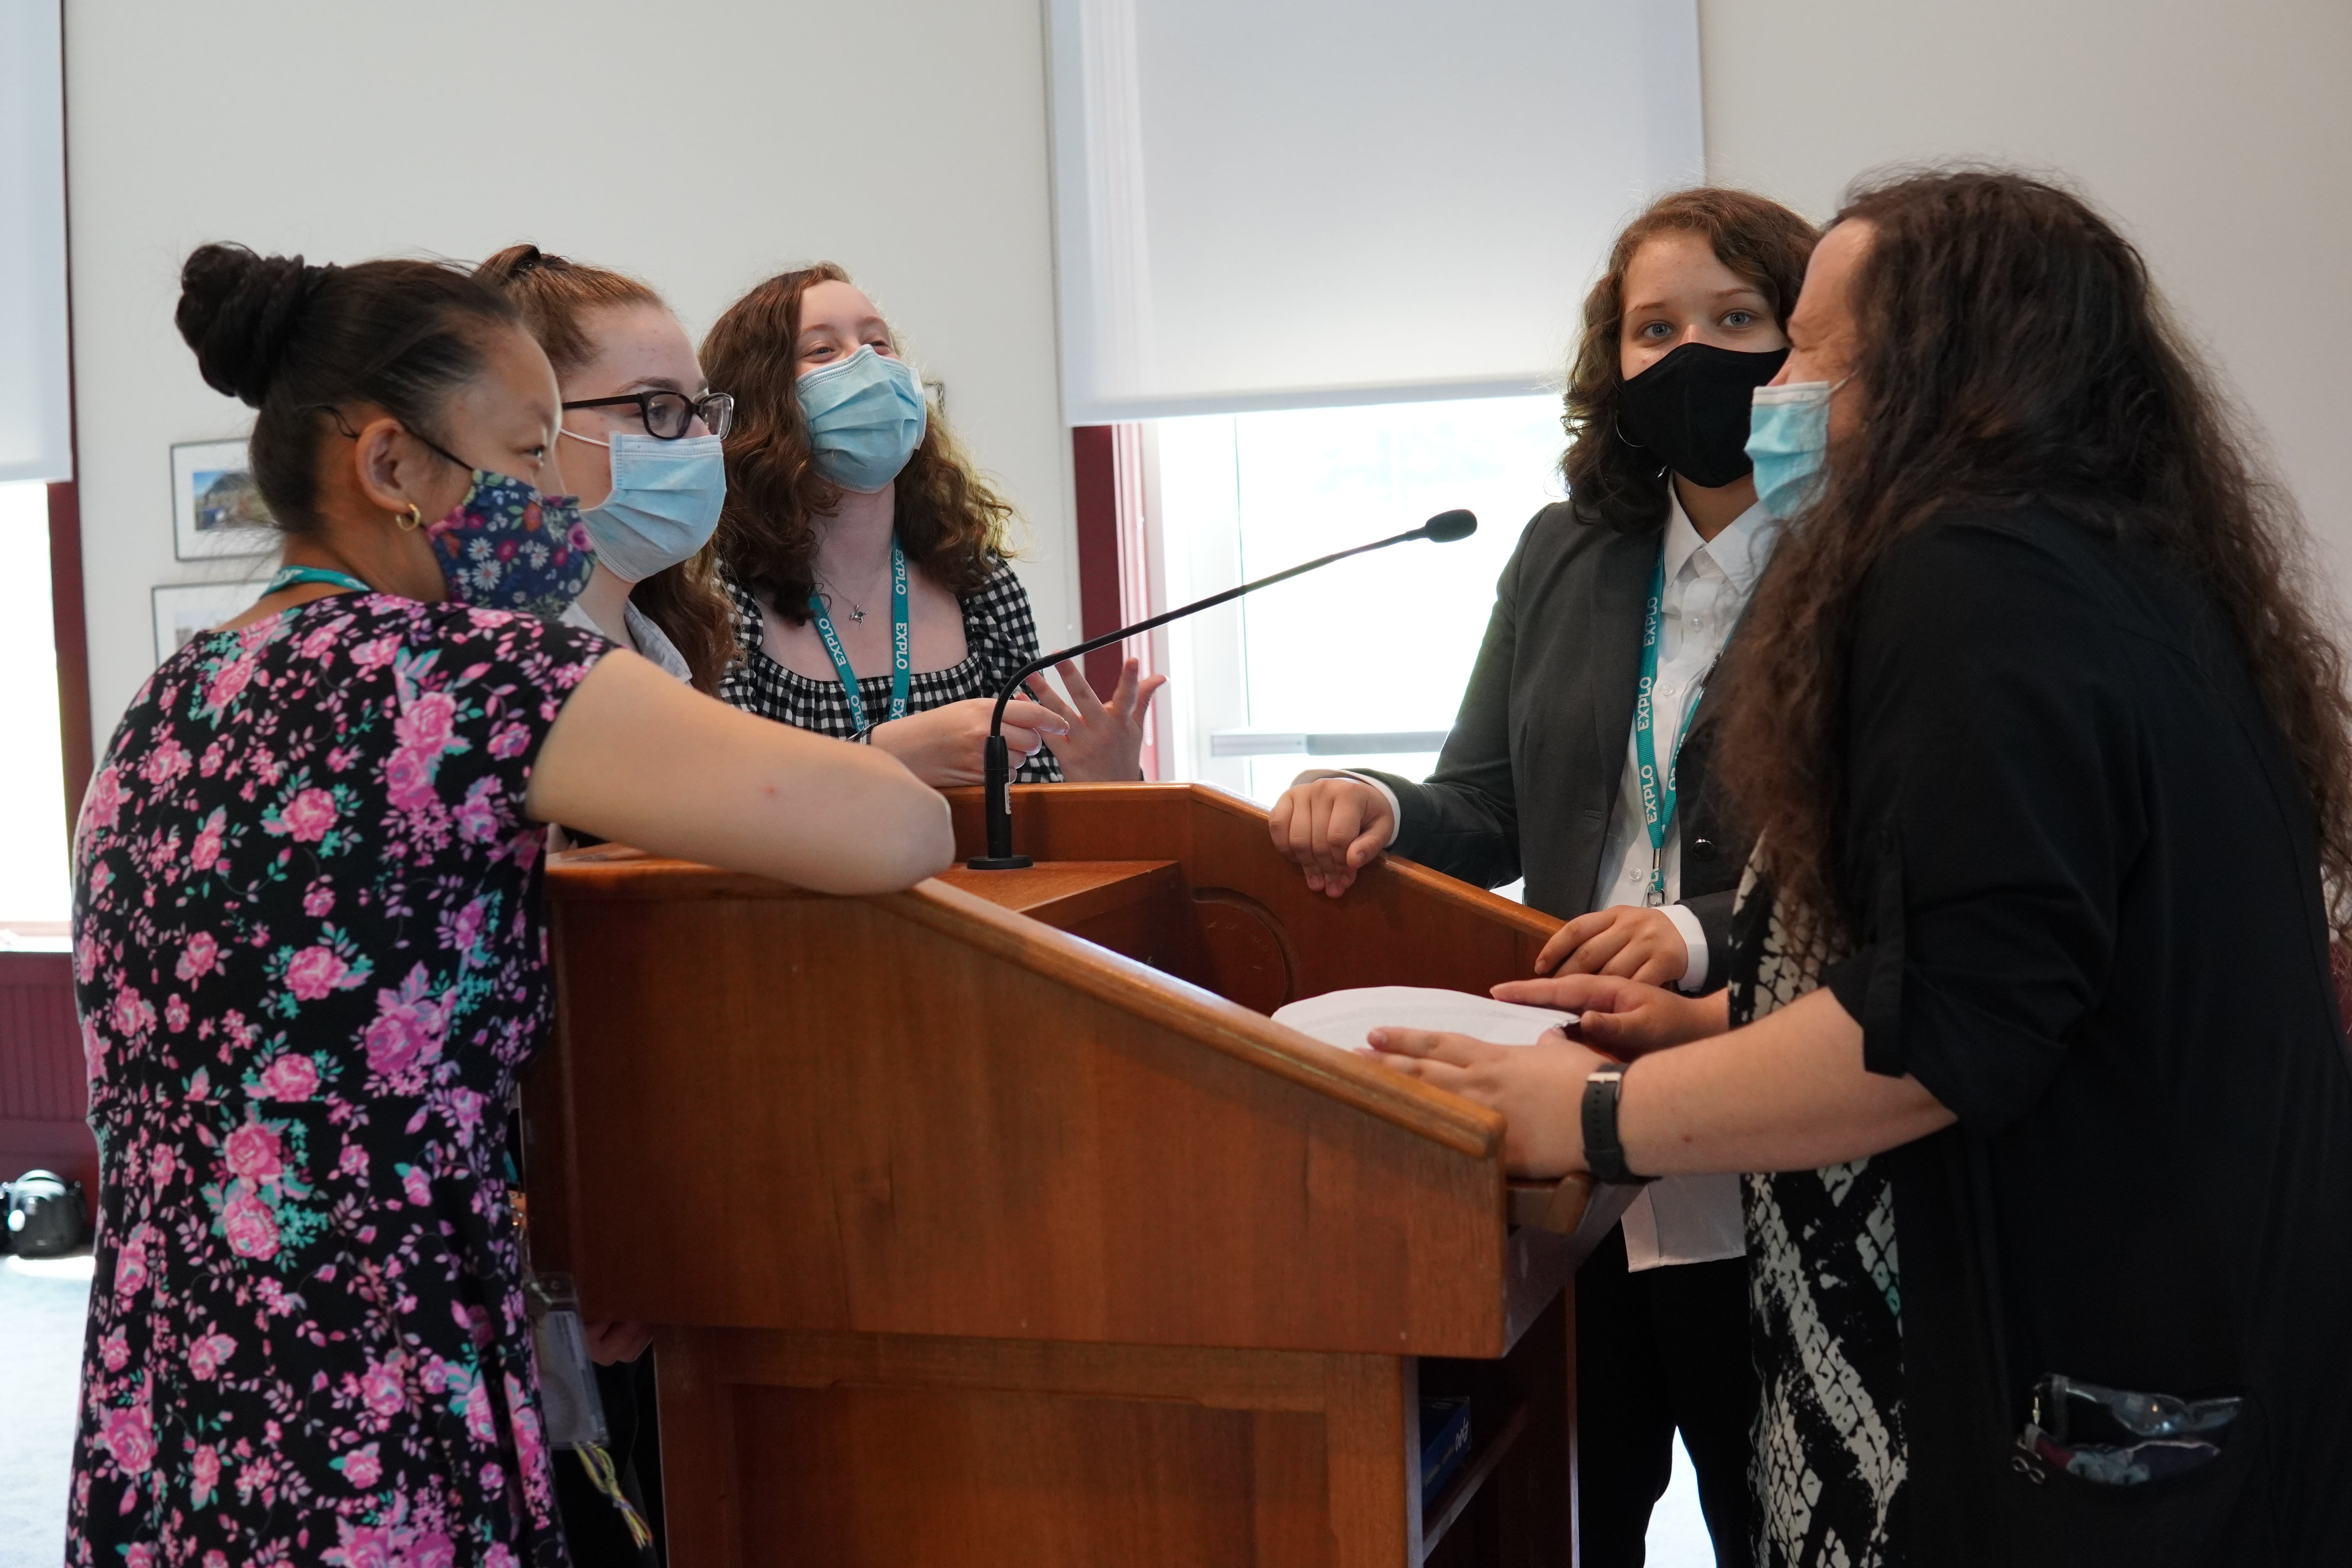 Teaching Fellow Adriana meets with students at the podium to test the mic and share a laugh.